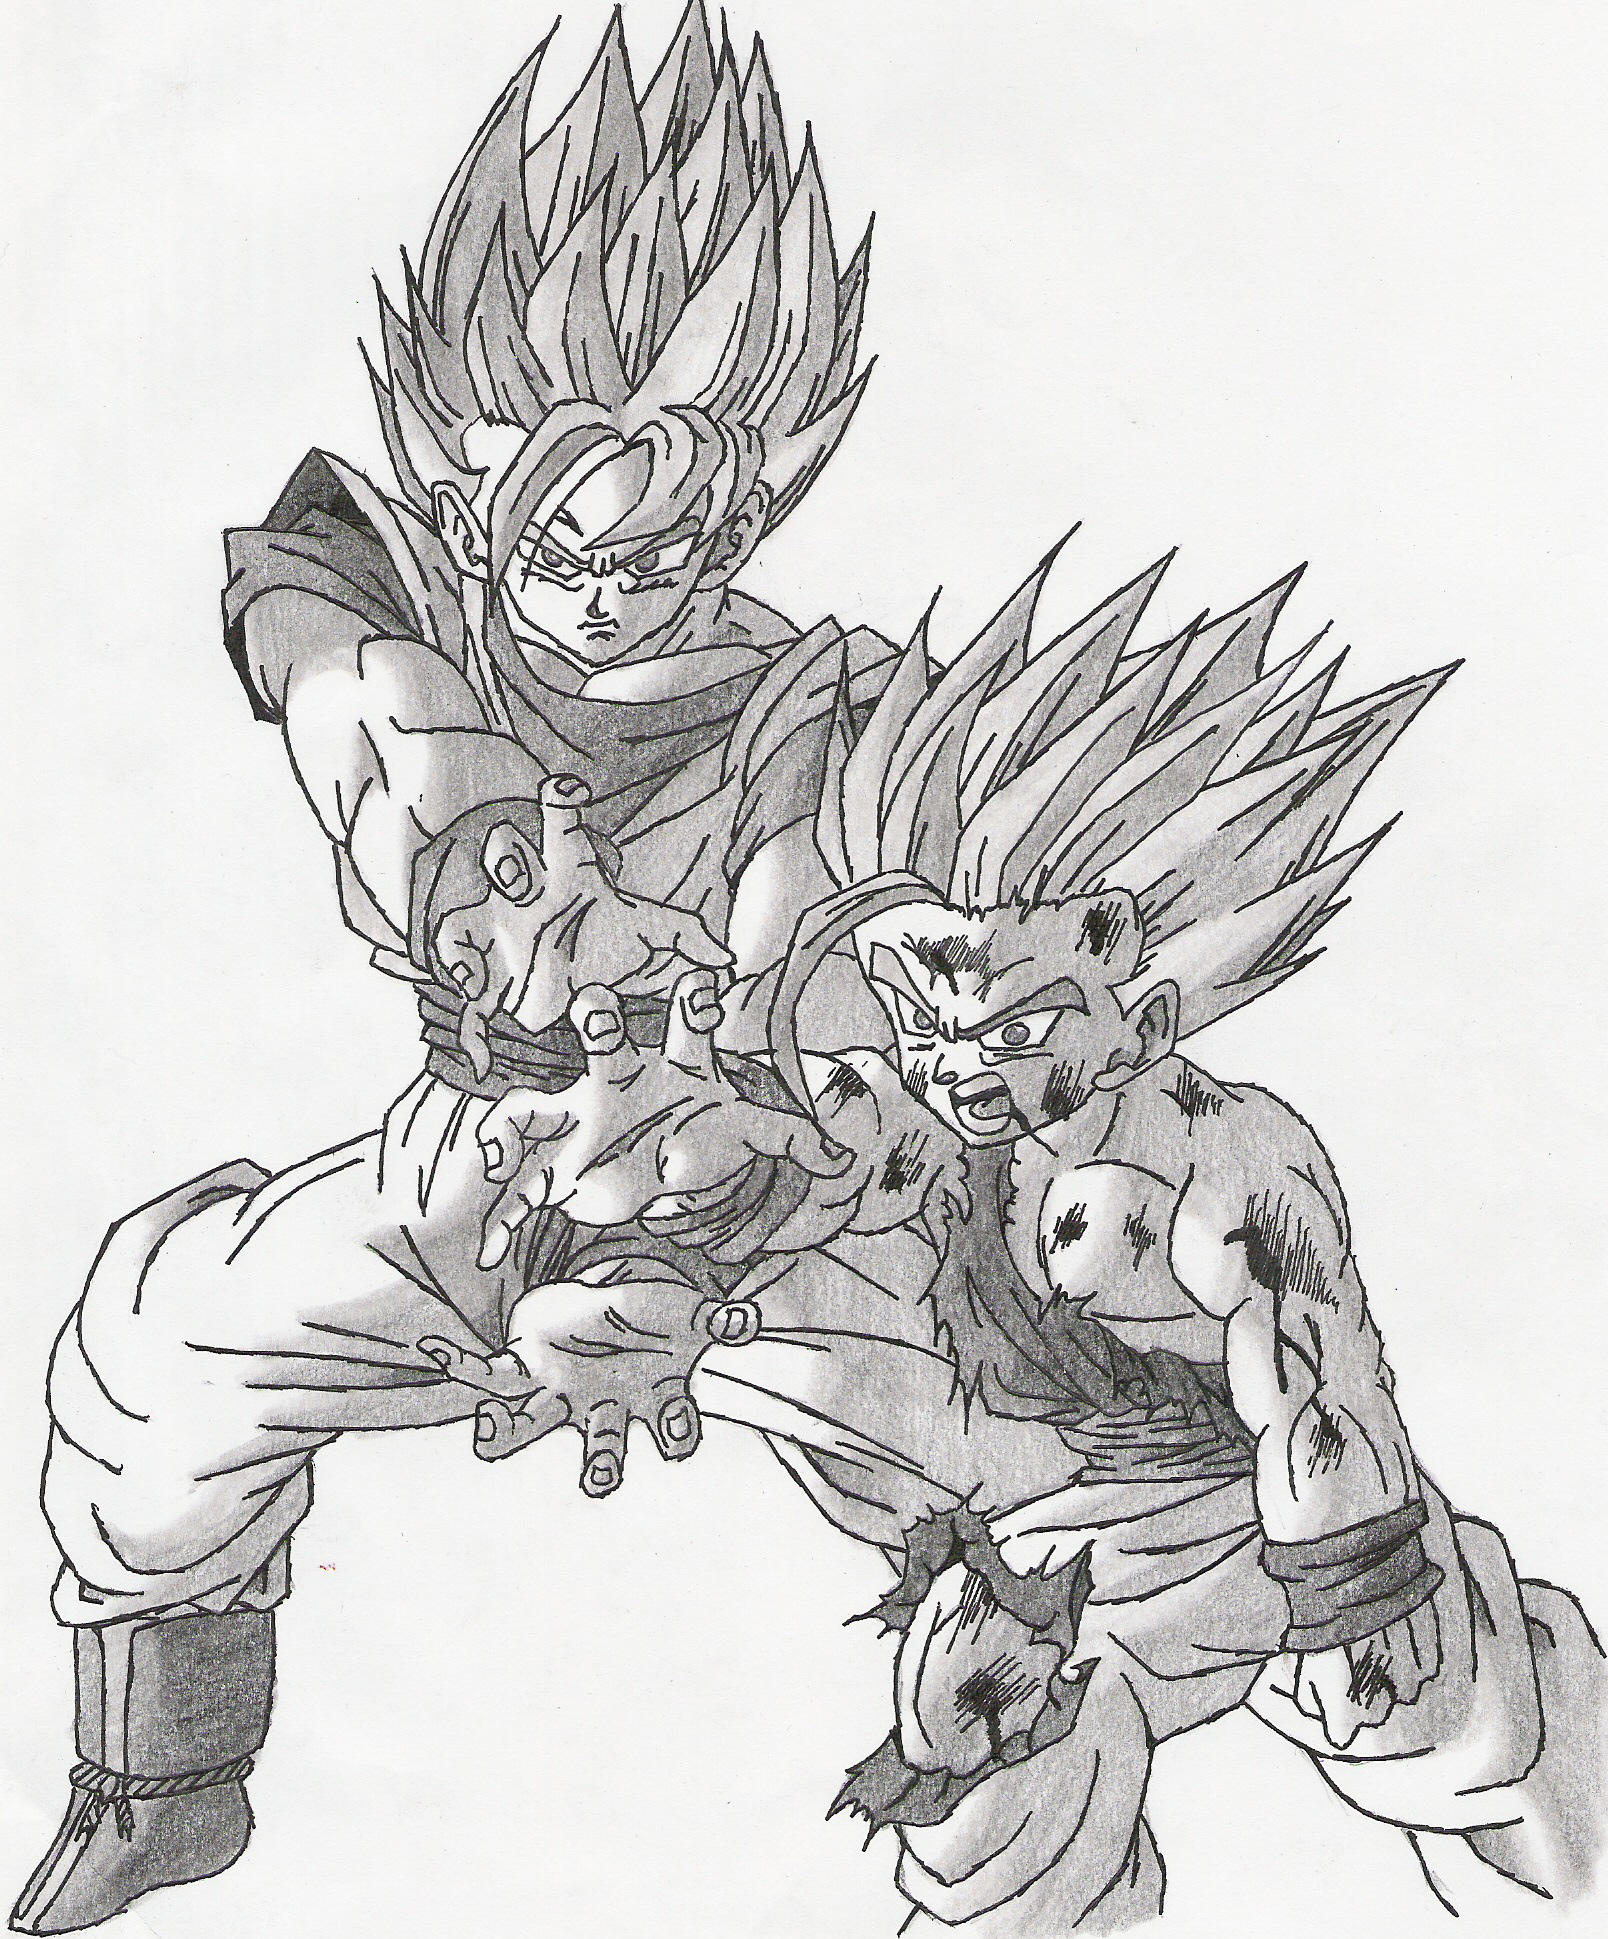 Goku-Gohan Finishing Cell Pt.1 by Sketcher6138 on DeviantArt - photo#22